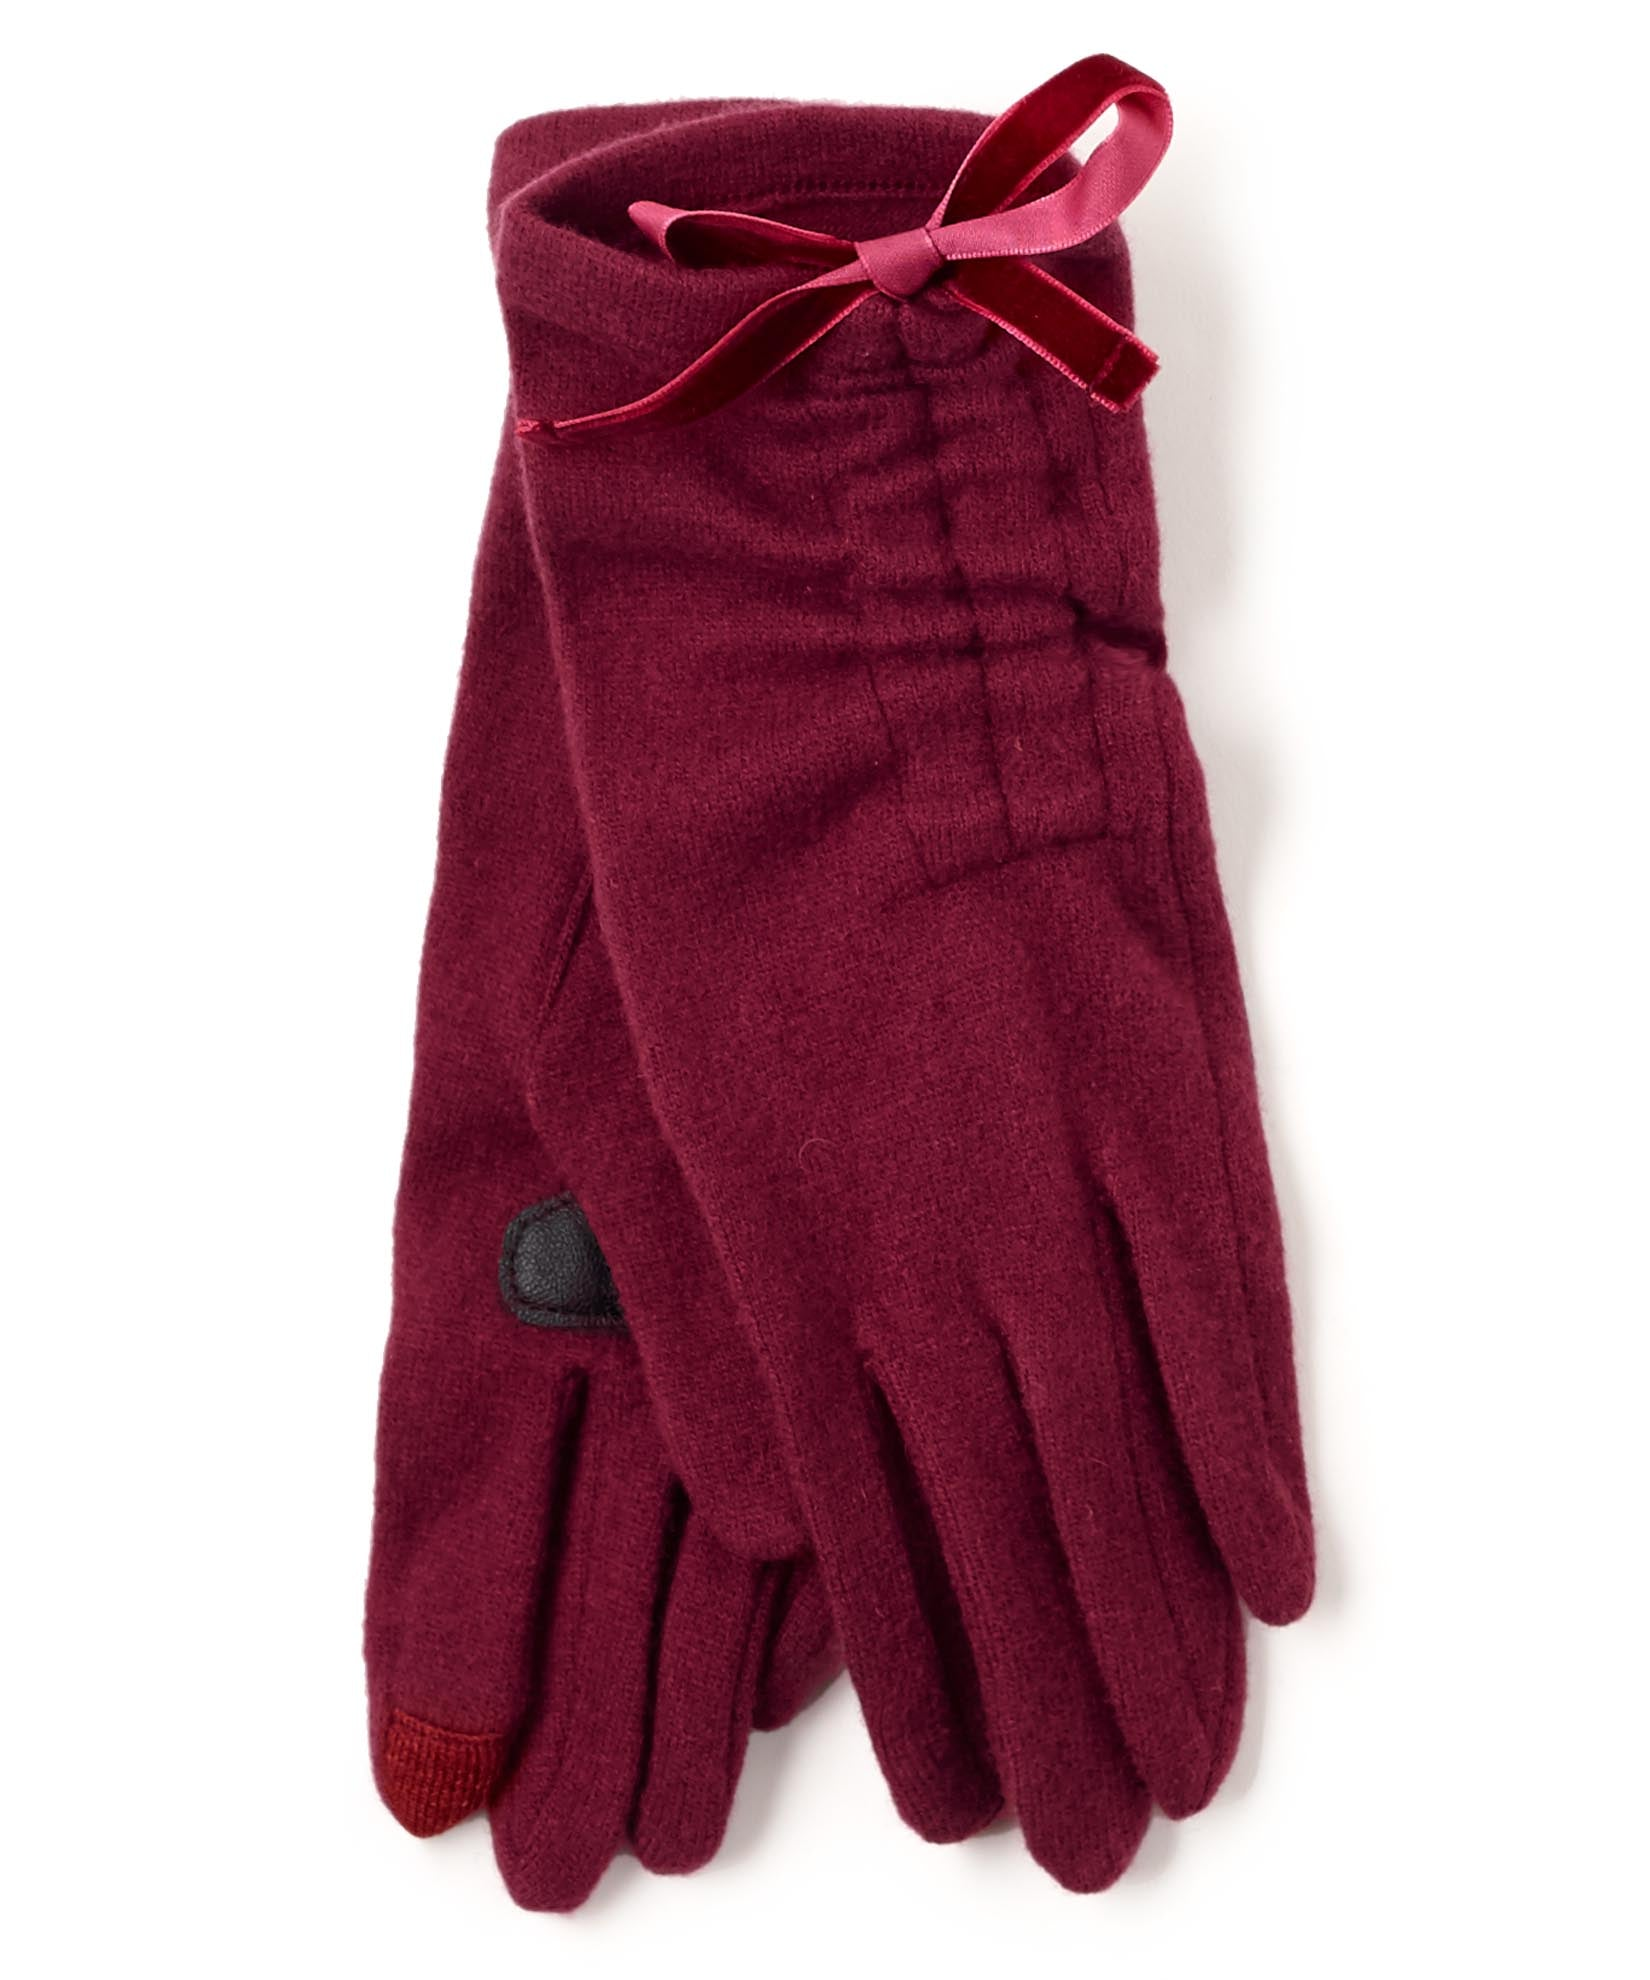 Port - Short Tie Glove